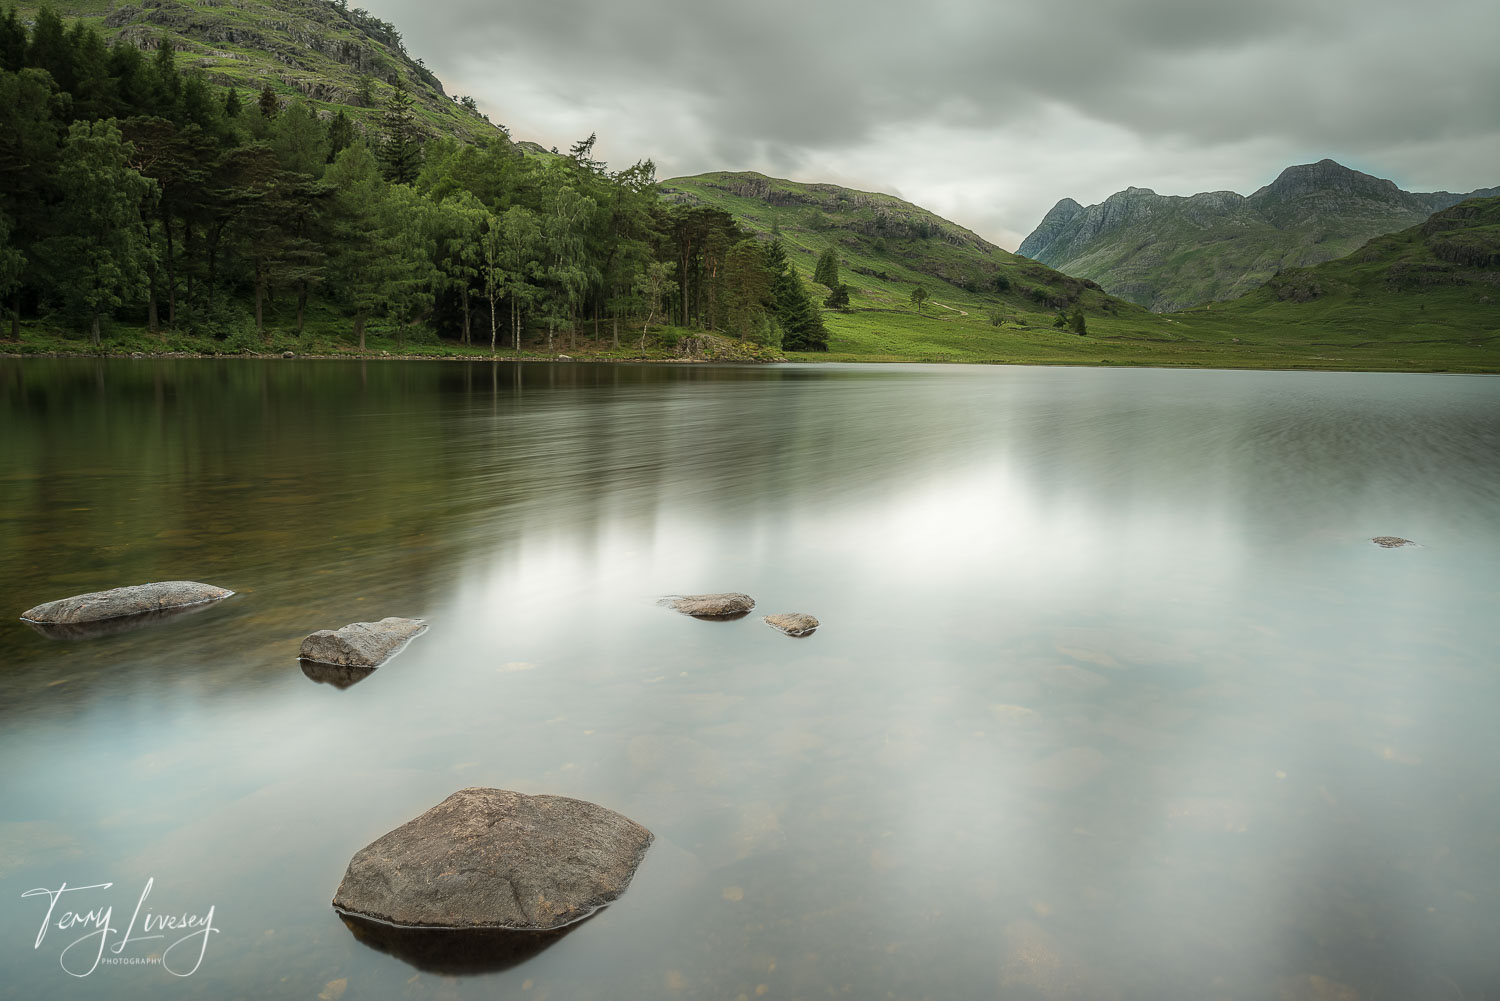 The Lake District never fails to deliver a location. A Lee Filters Big Stopper was to put streaks in the water which was gently being moved by small breeze.